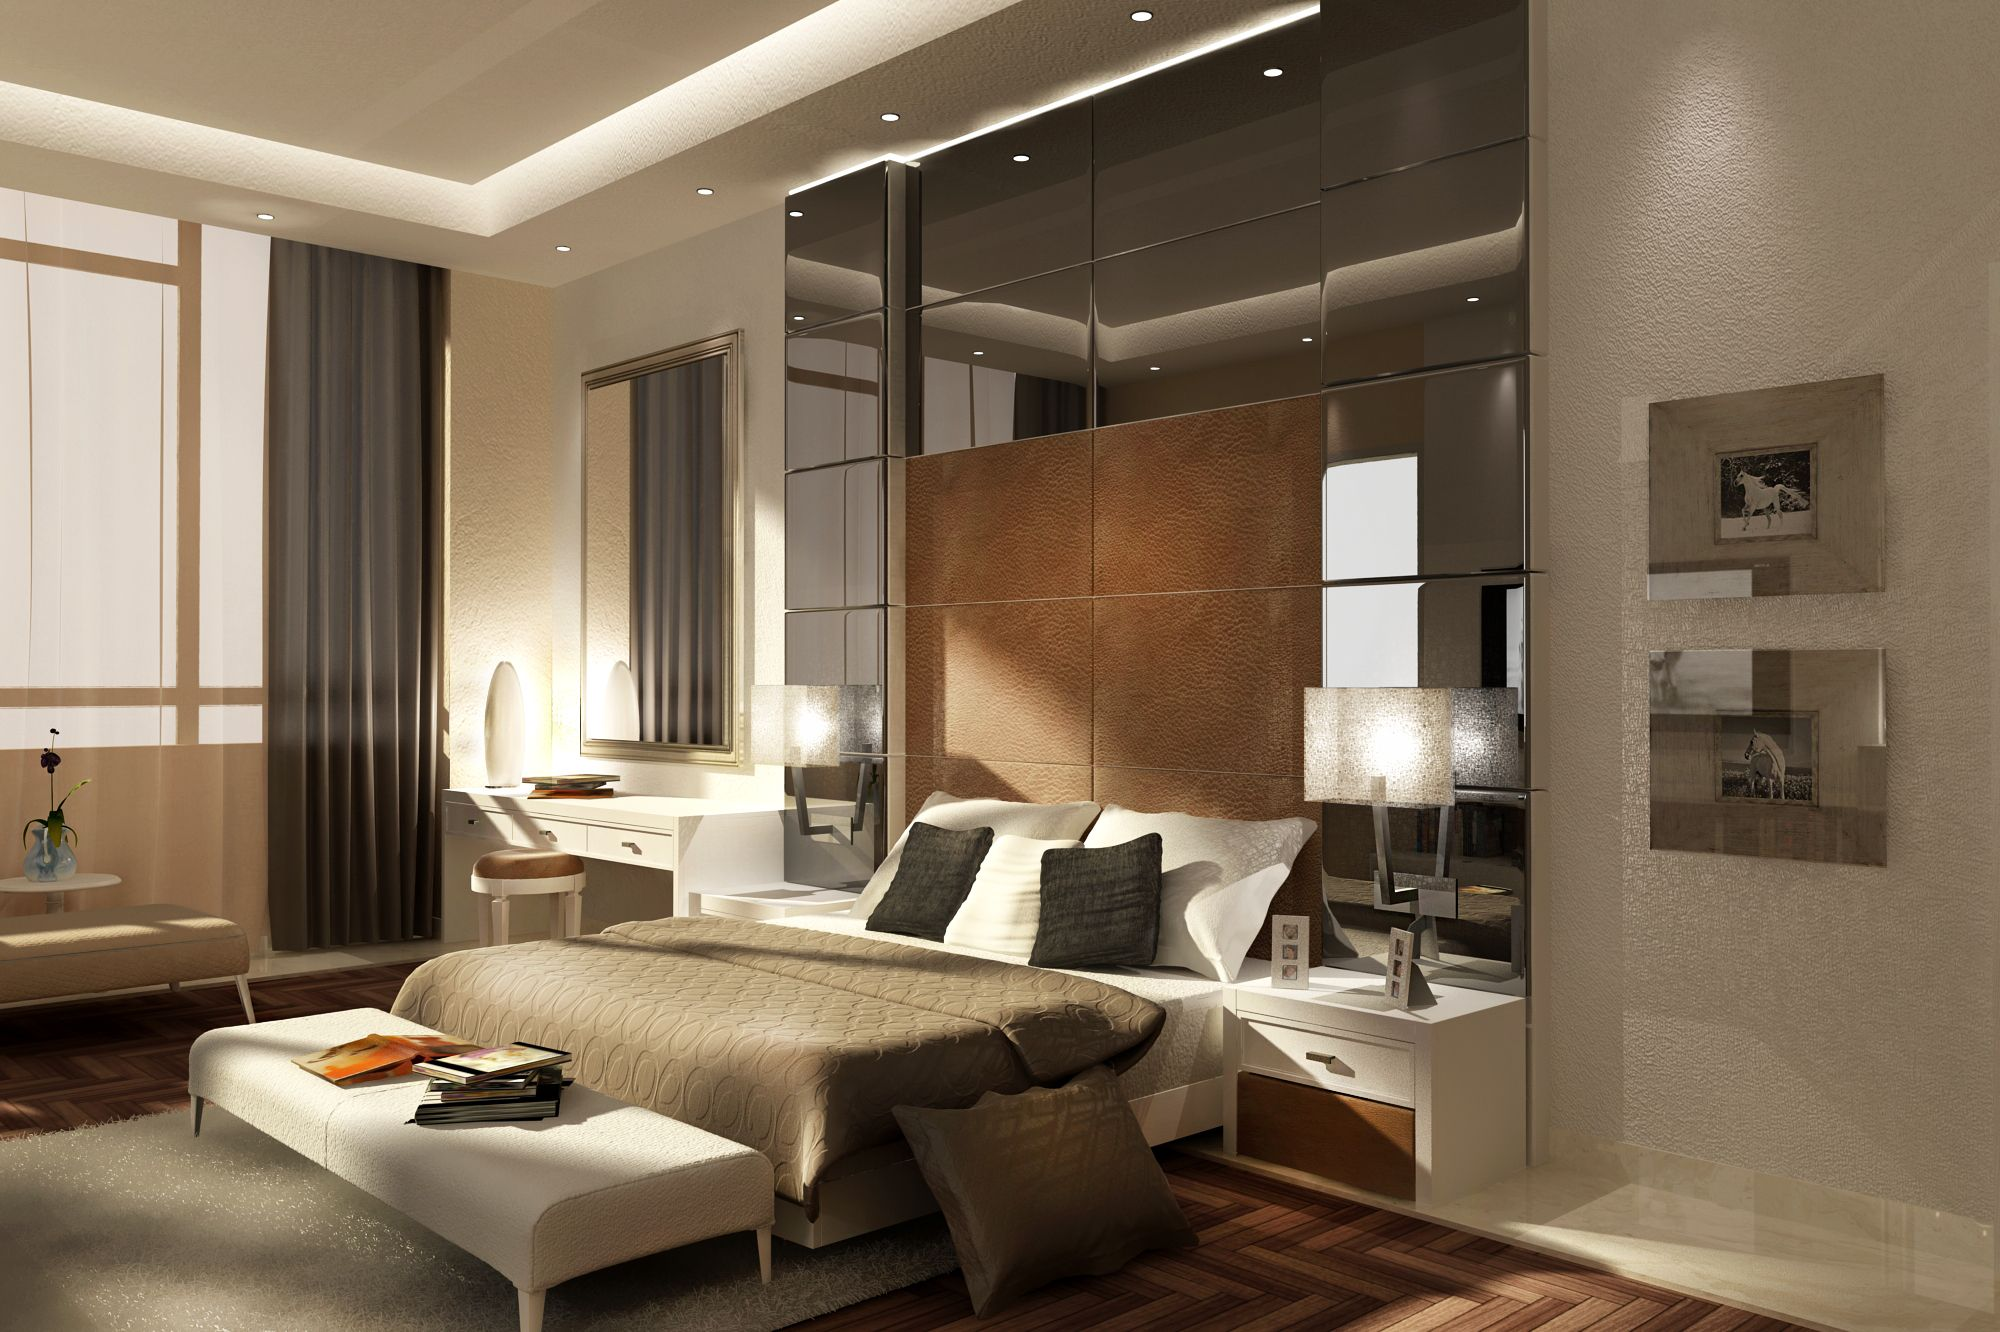 3d render 3d max interior design bedroom design modern for Modern interior designs for bedrooms